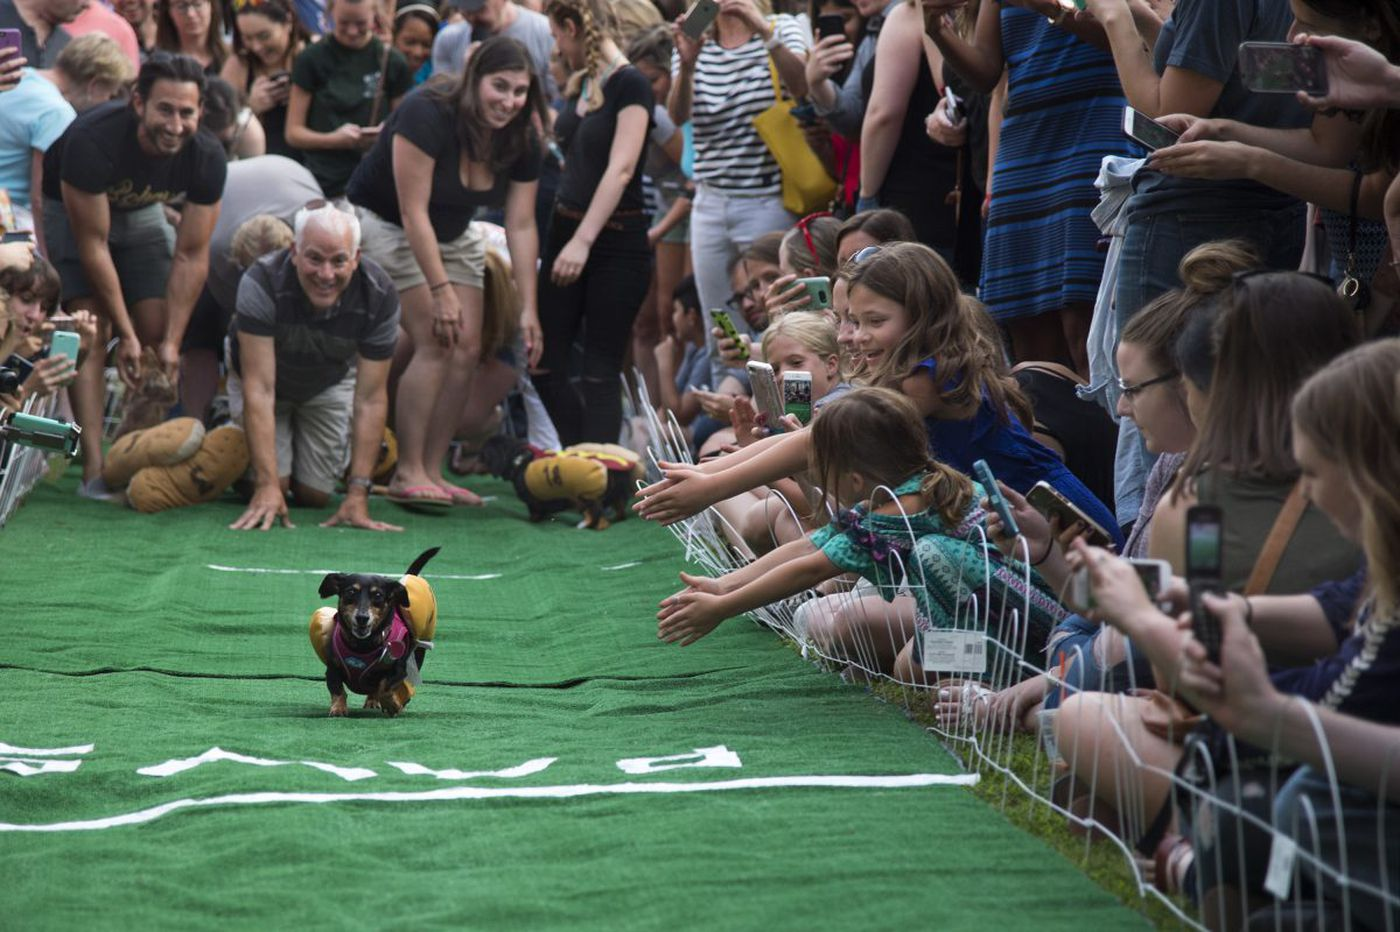 Philly wiener dogs race in Manayunk